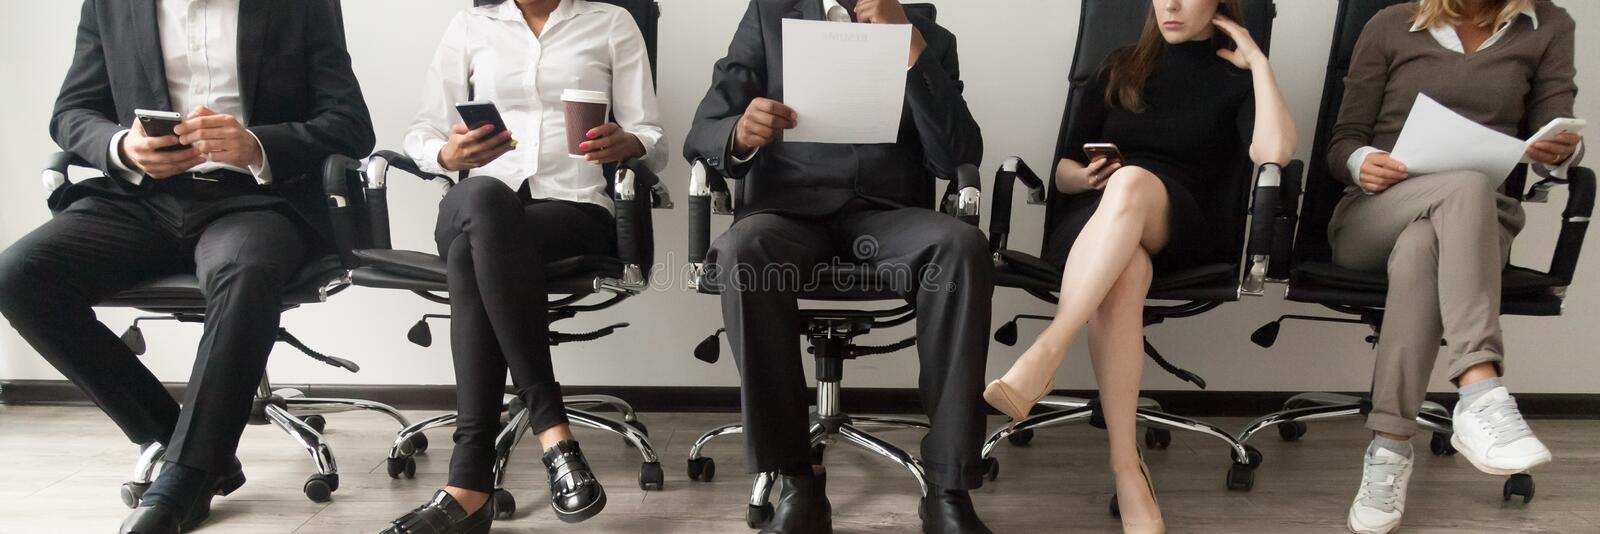 Horizontal image diverse applicants sitting in queue waiting job interview stock photos